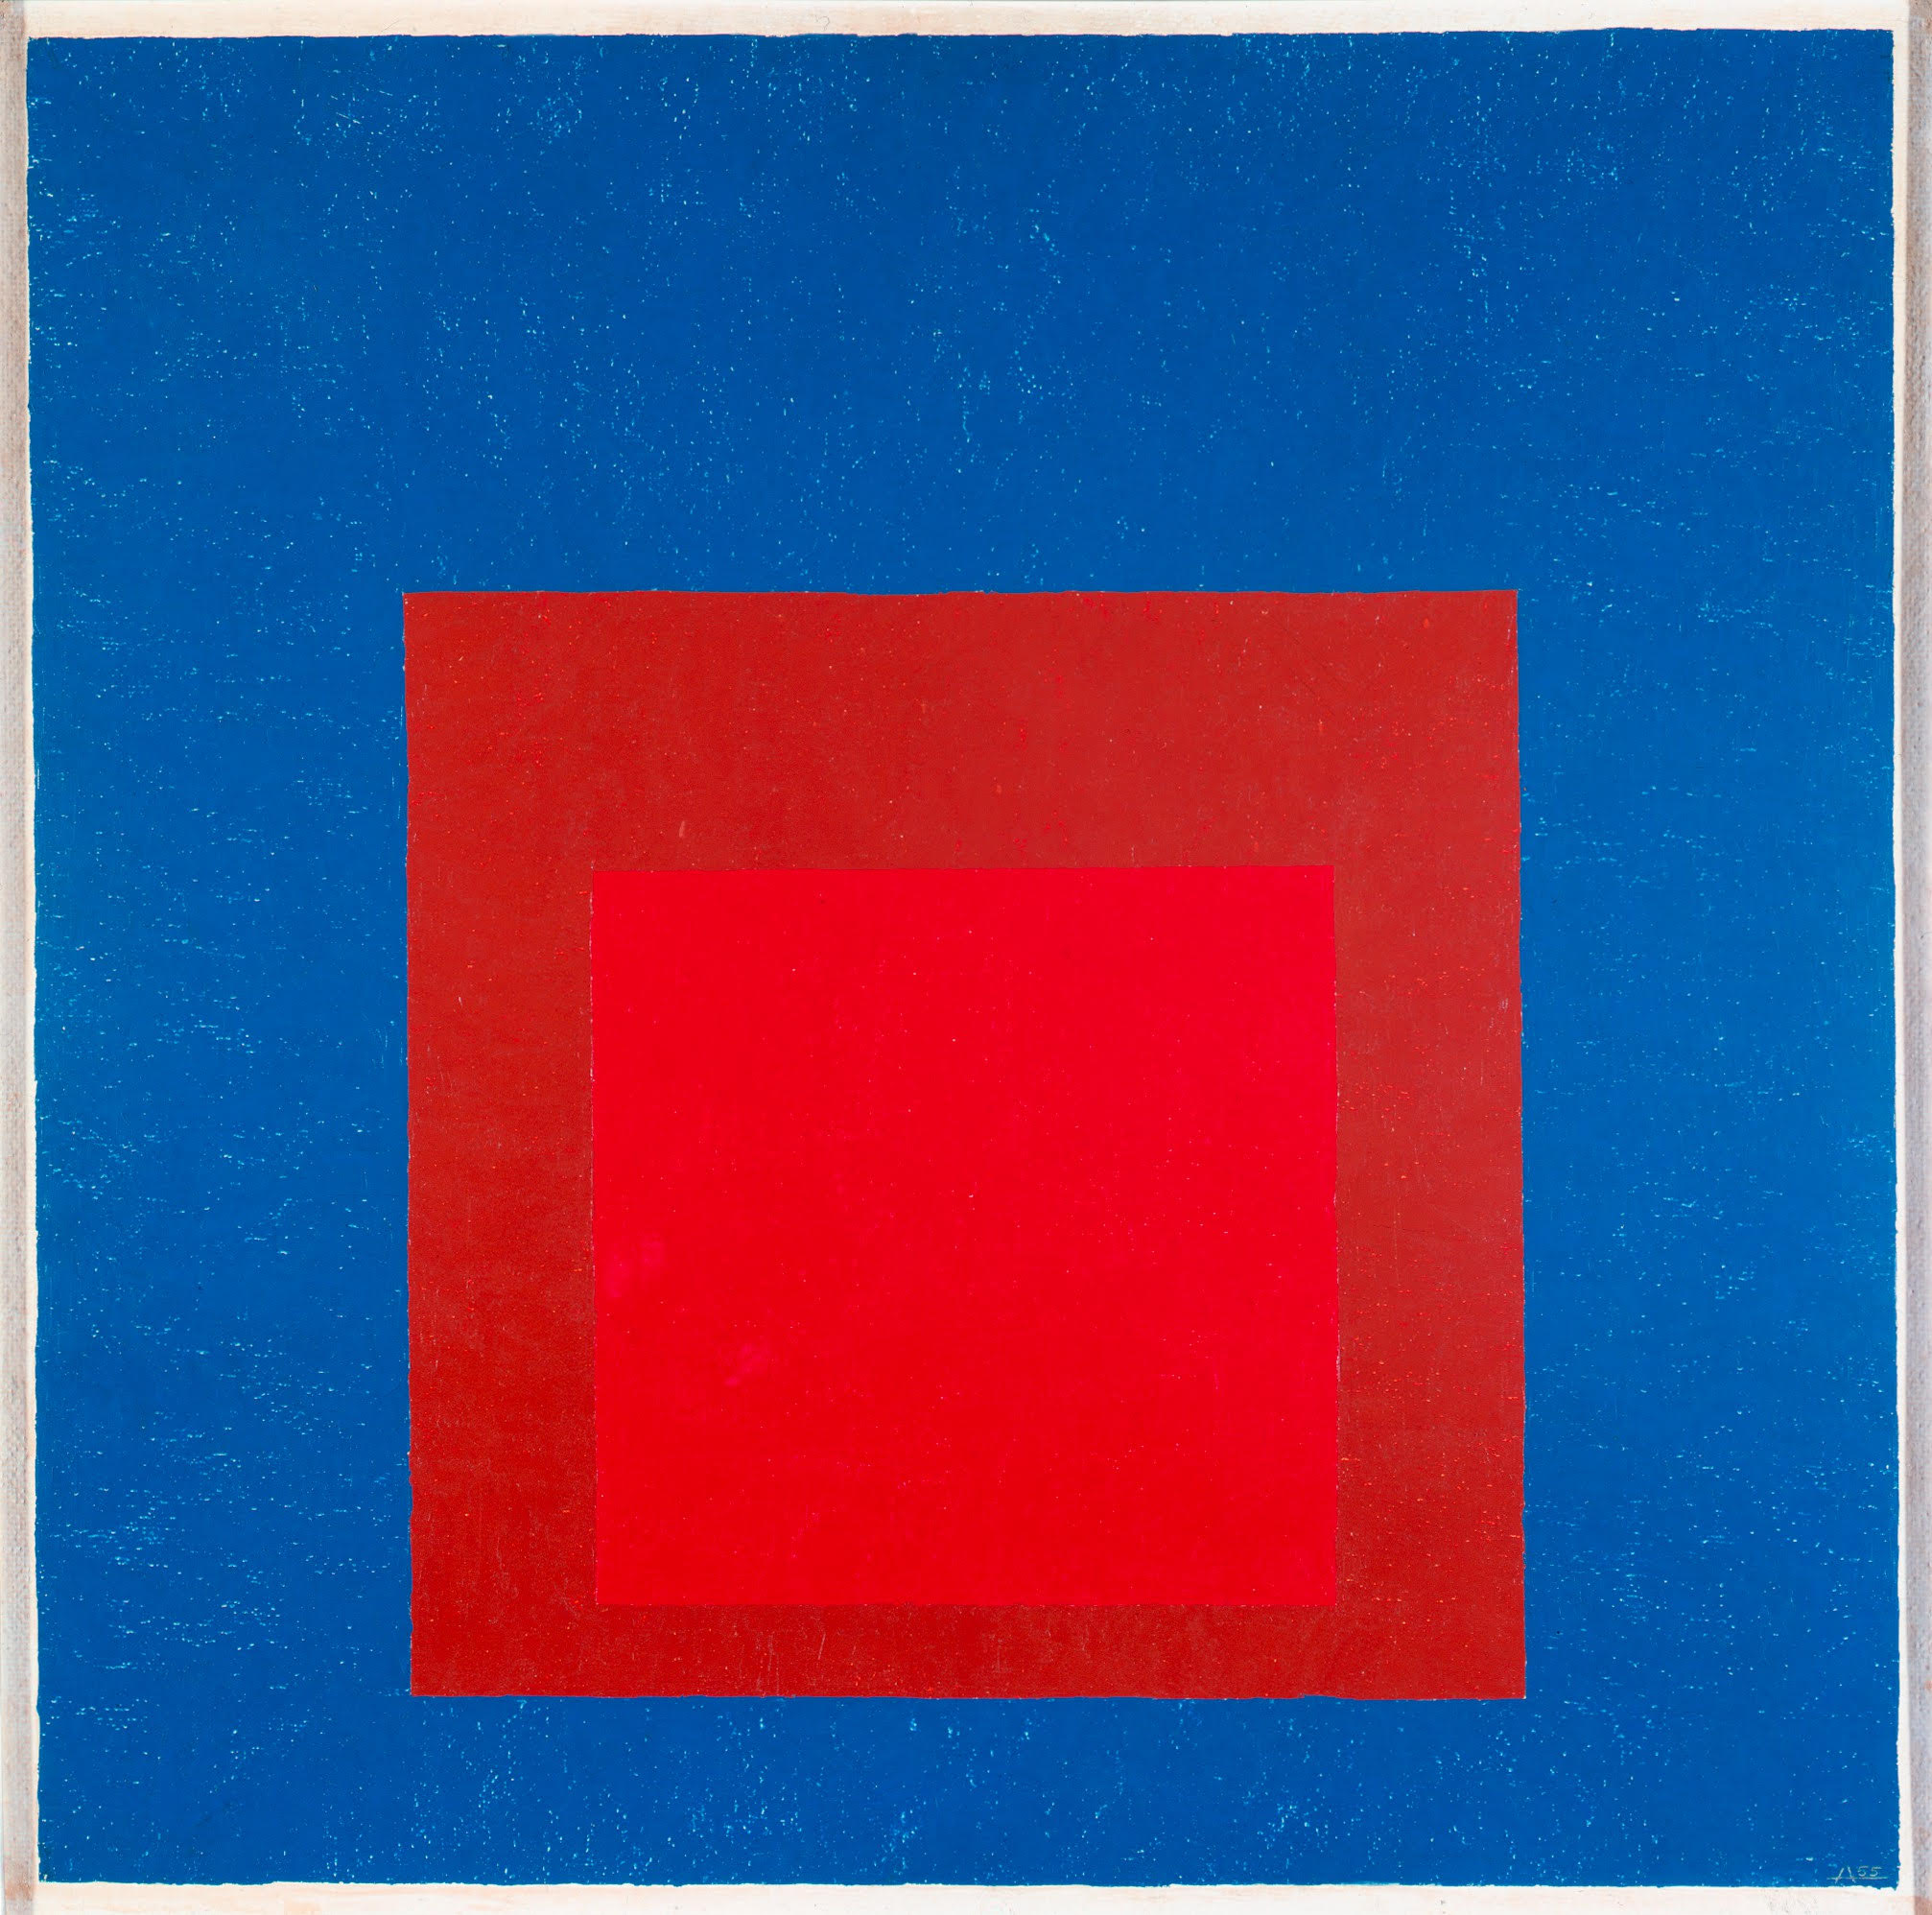 Homage to the Square: Against Deep Blue Josef Albers, American (Bottrop, Germany 1888 - 1976 New Haven, Conn.)